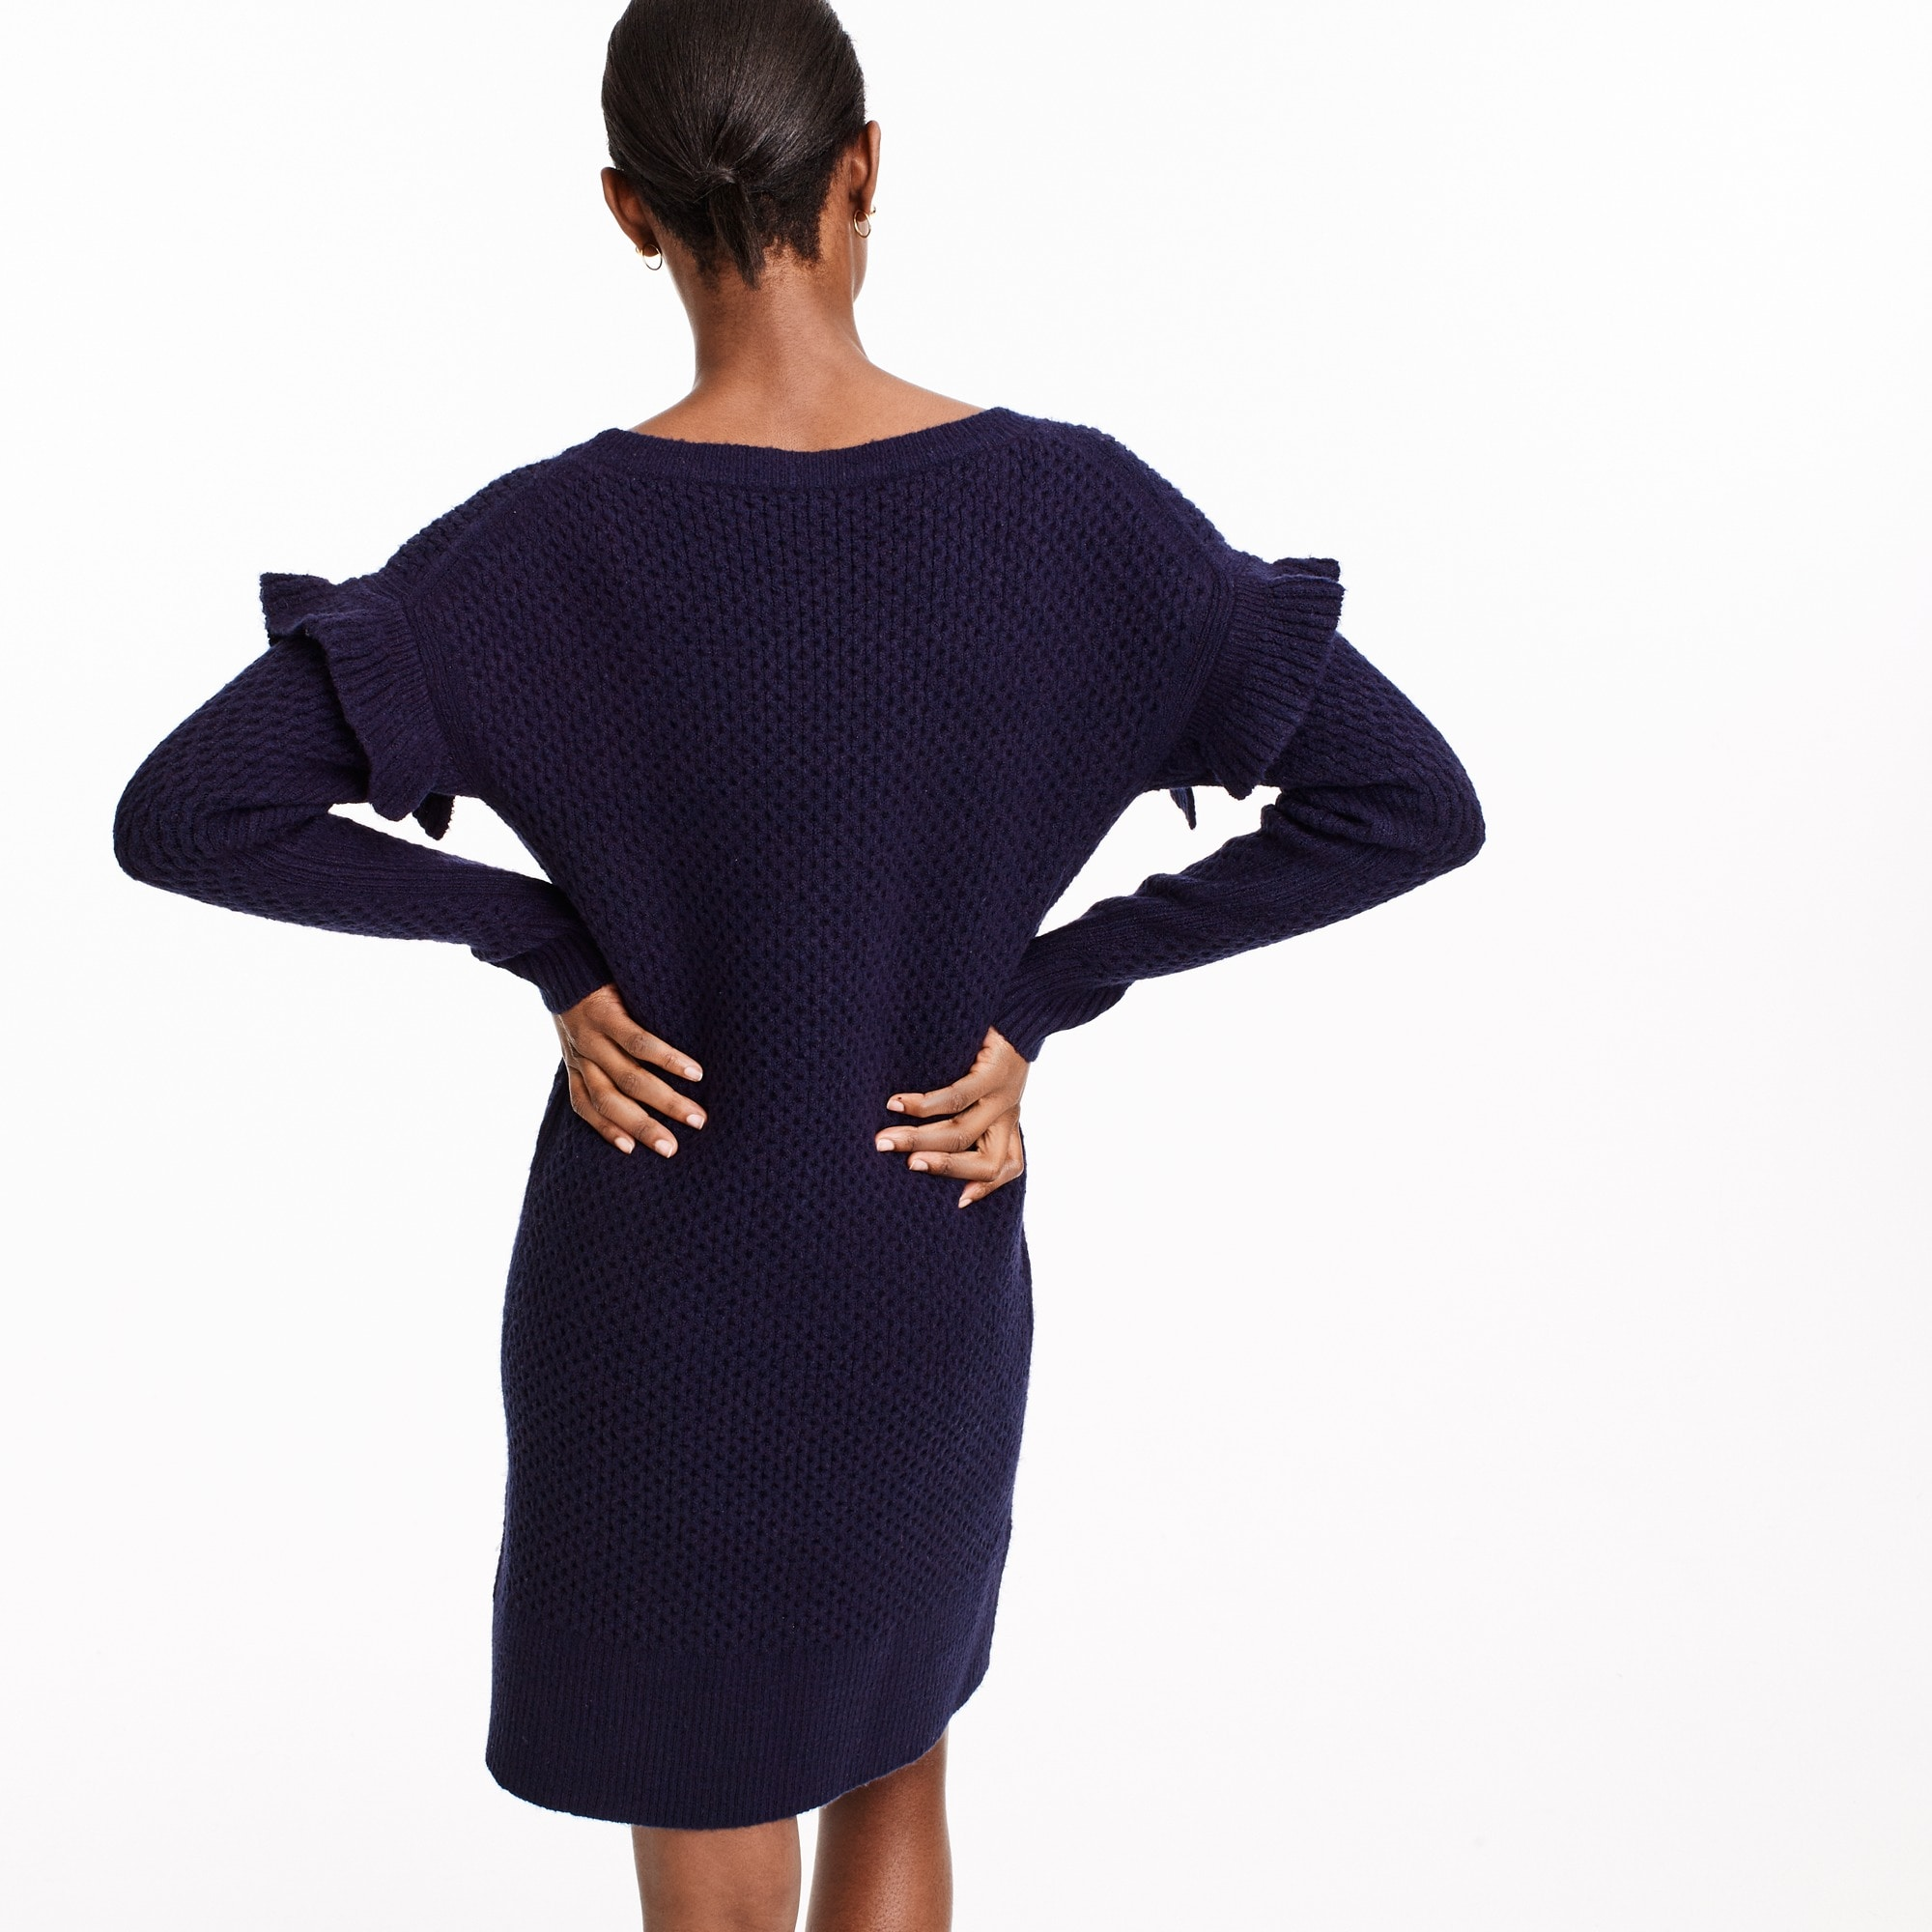 Image 3 for Cable-knit ruffle-sleeve sweater-dress